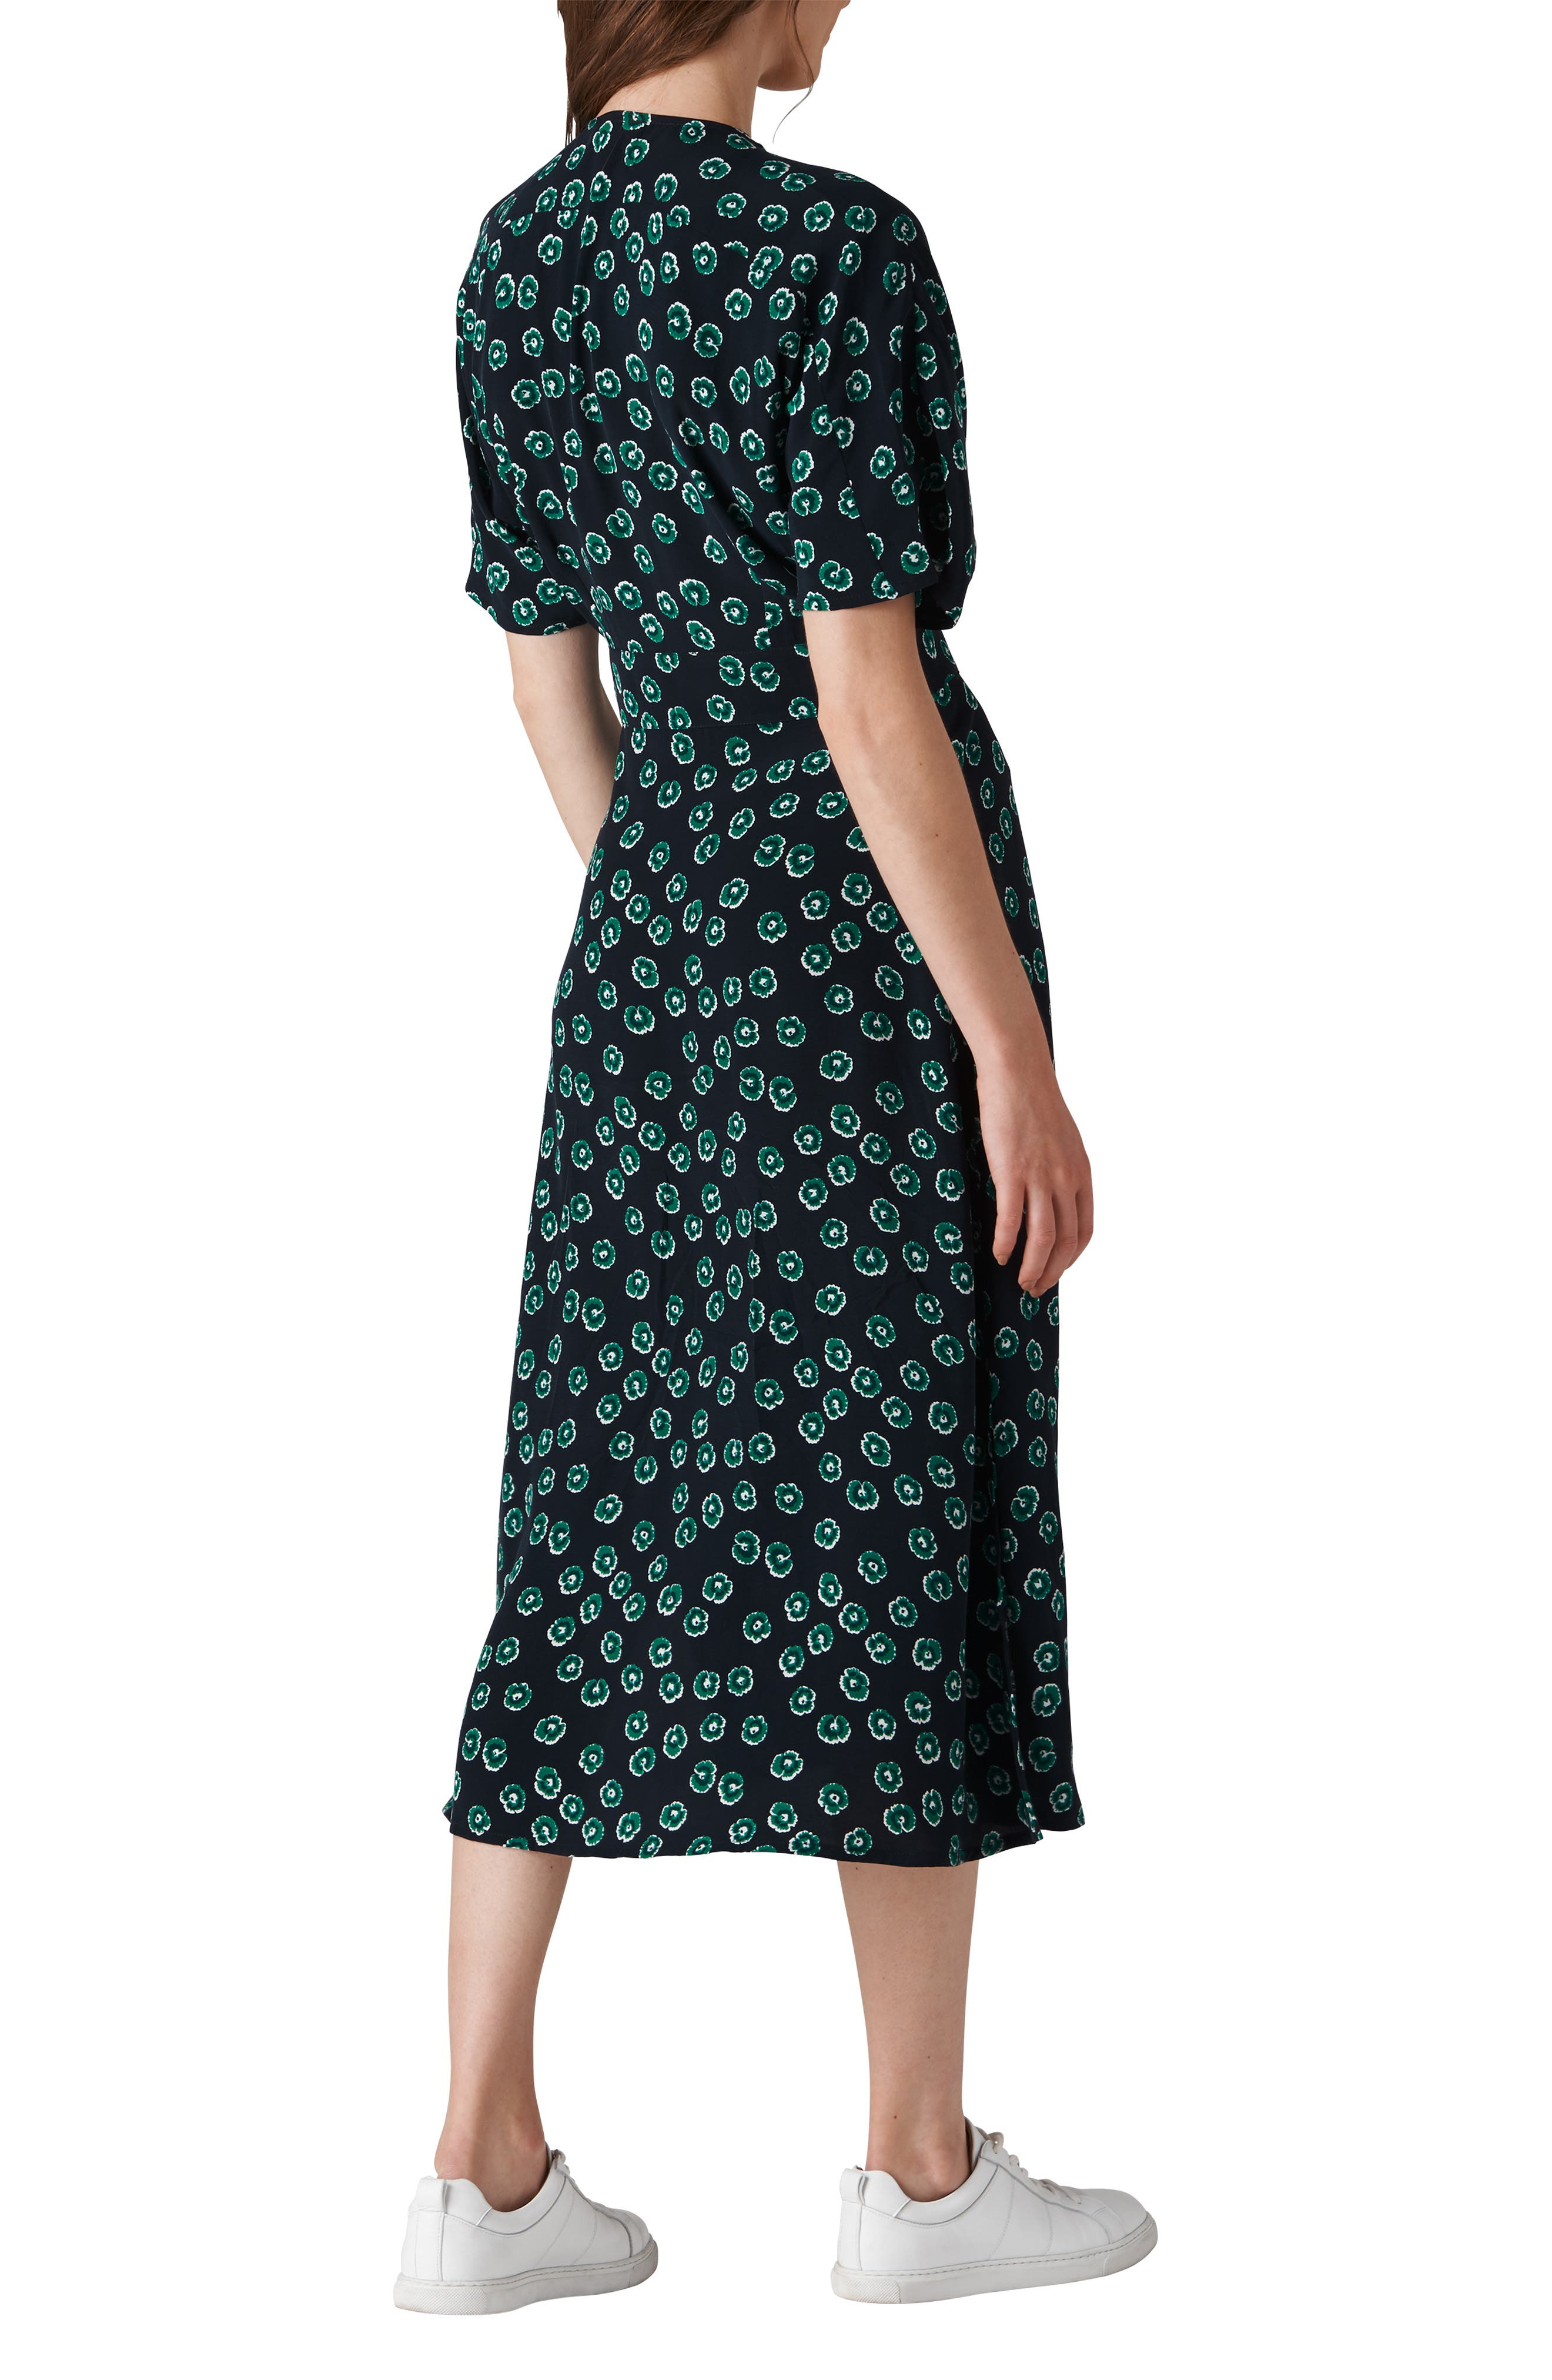 Lenno Nayna Shirtdress,                             Alternate thumbnail 2, color,                             GREEN MULTI